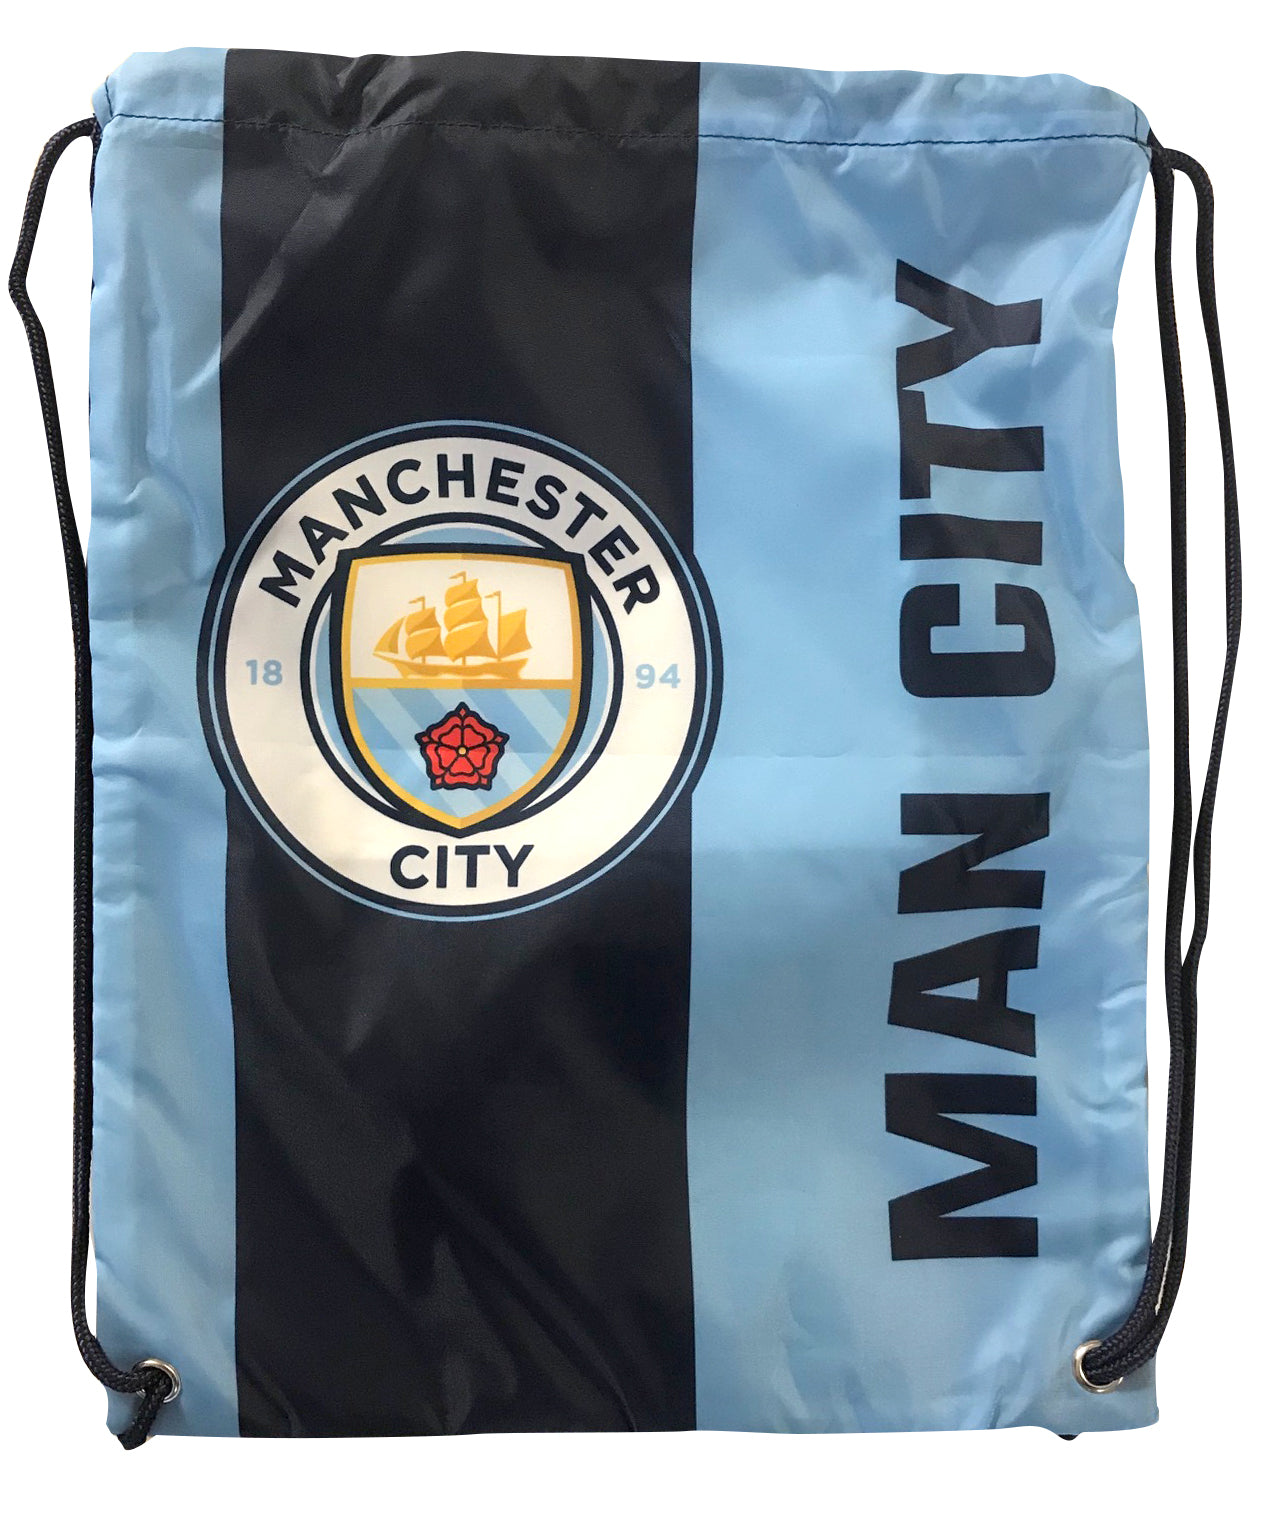 Manchester City FC Logo Drawstring Cinch Bag by Icon Sports